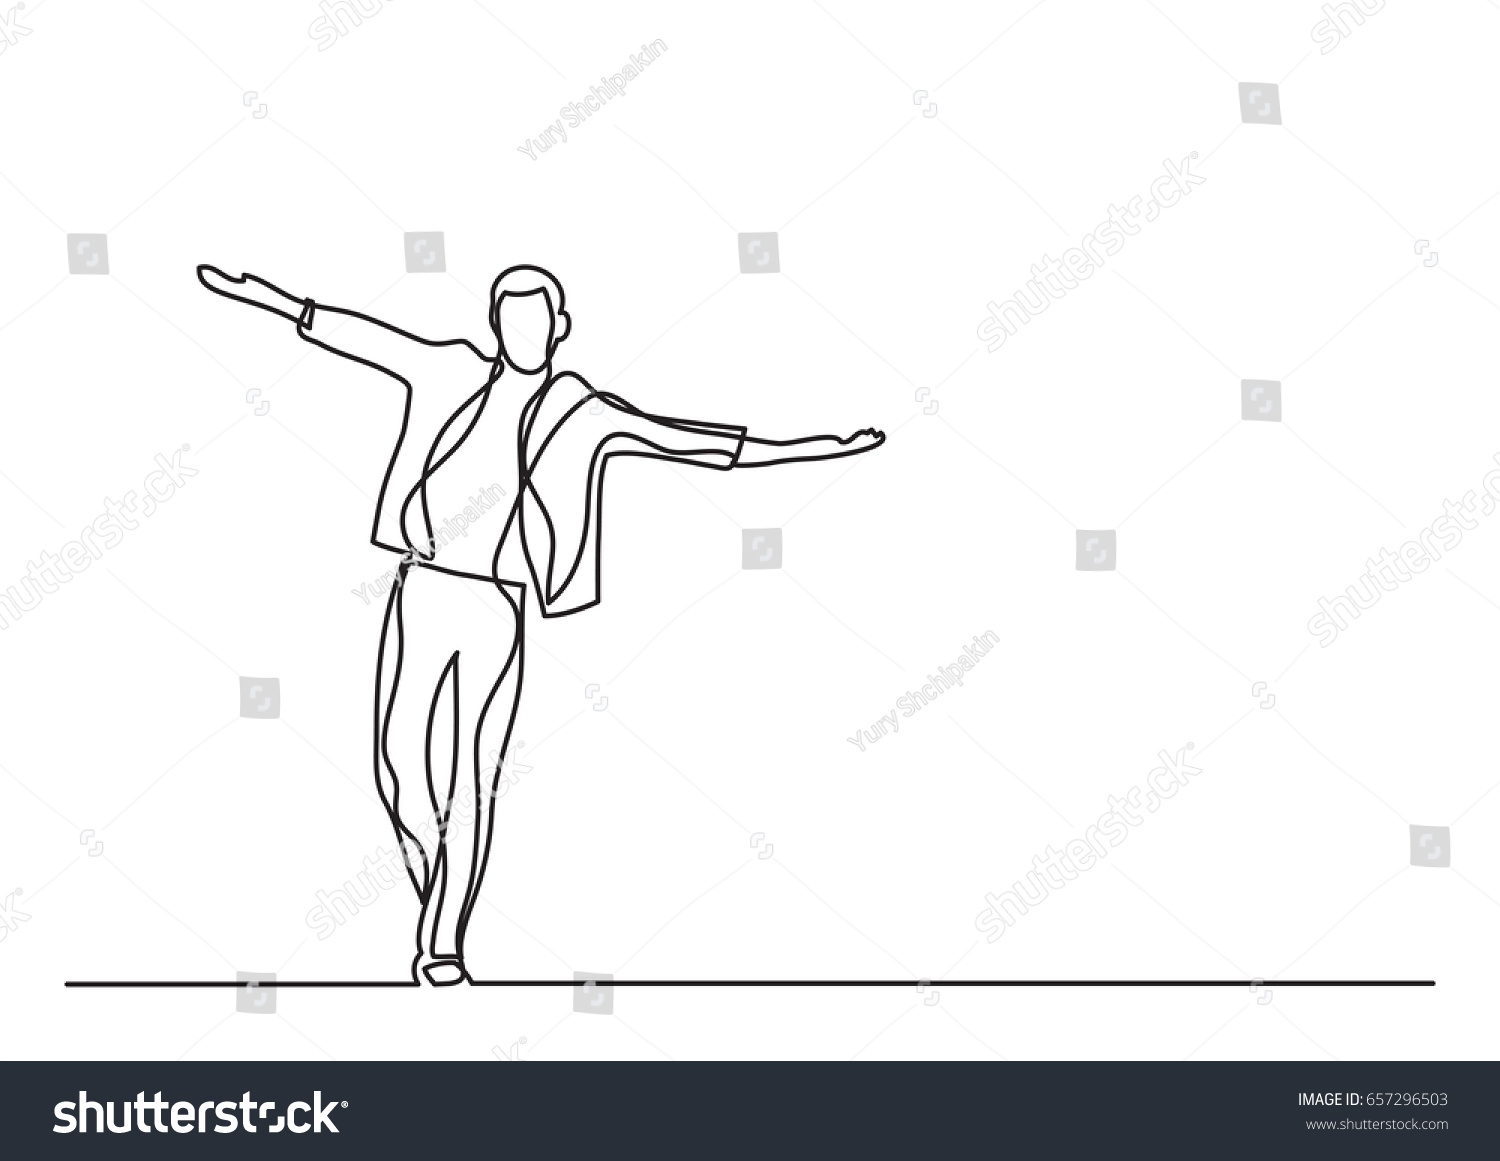 Line Drawing Pictures : Happy man walking single line drawing stock vector hd royalty